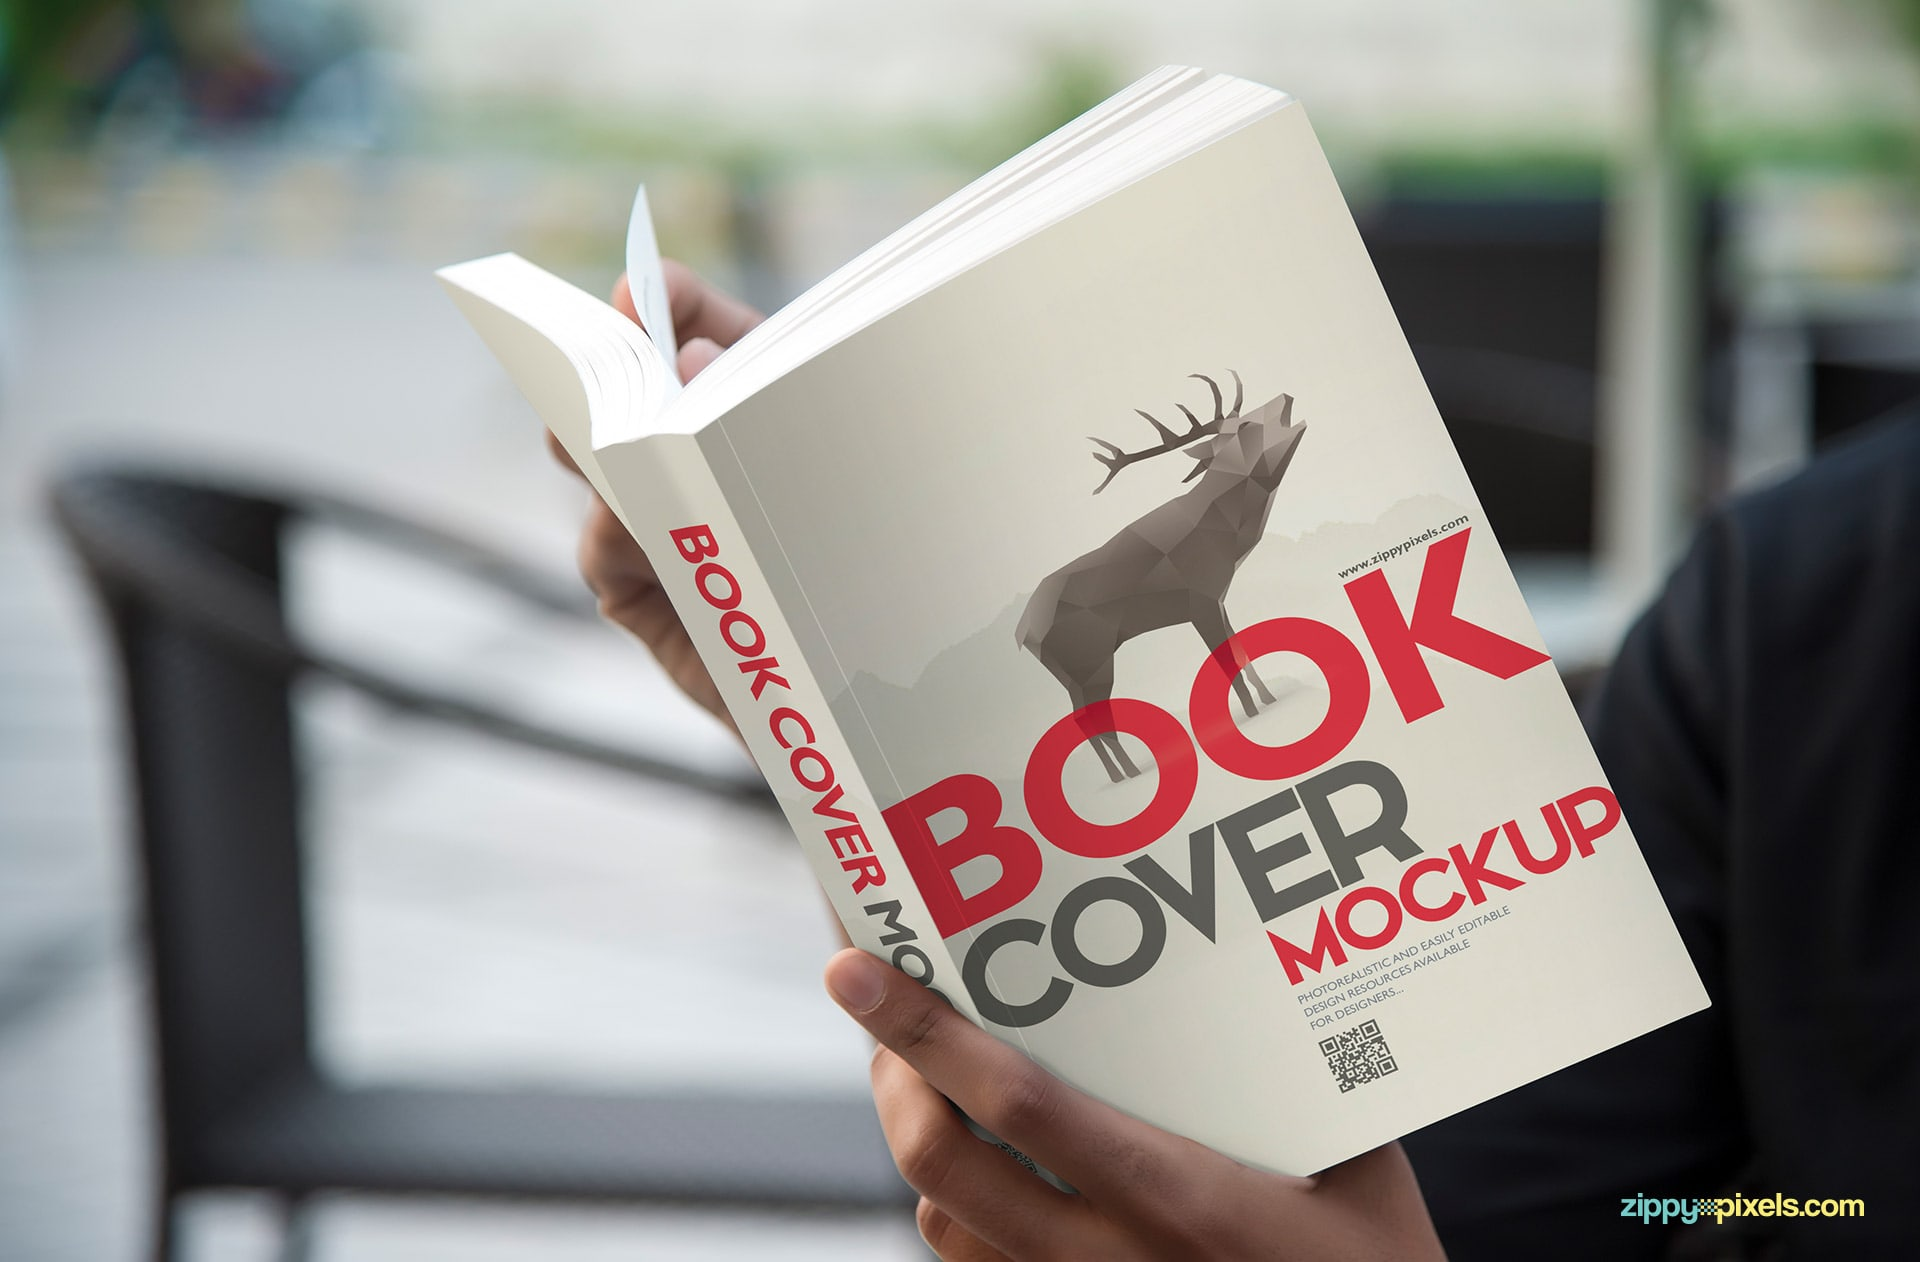 Book cover mockup - person holding paperback book in hands for showcasing cover design